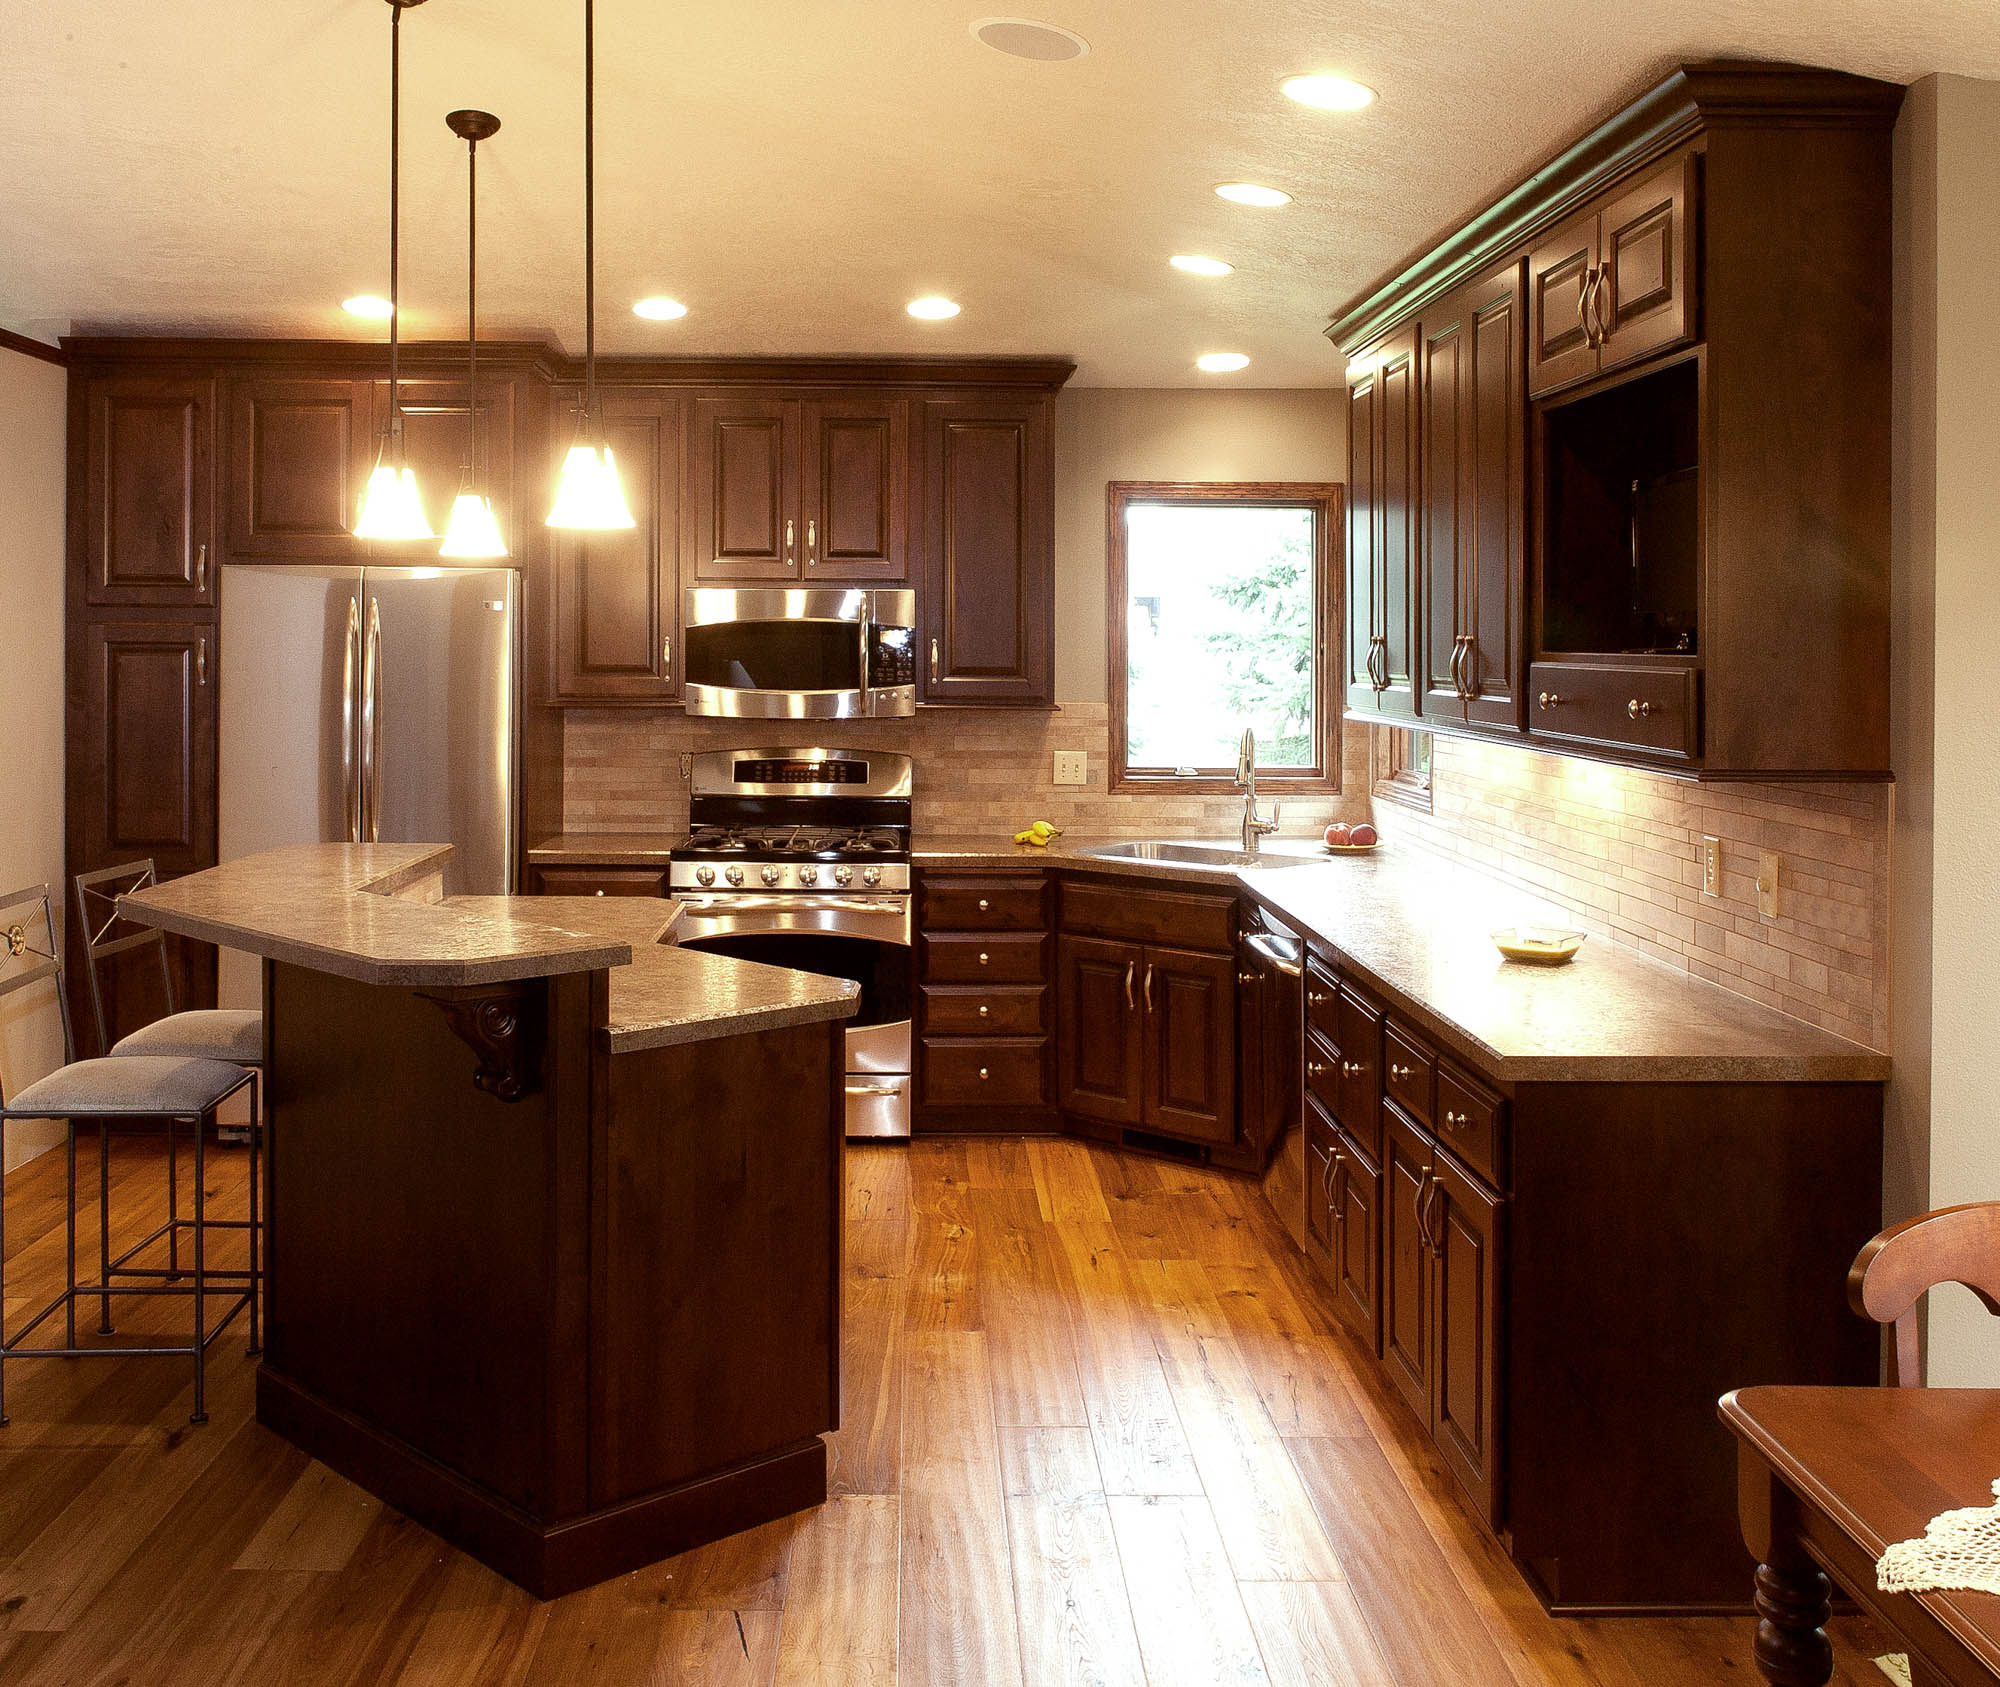 Renew | Stained kitchen cabinets in Coffee with Ebony Glaze by Showplace Cabinetry - view 2